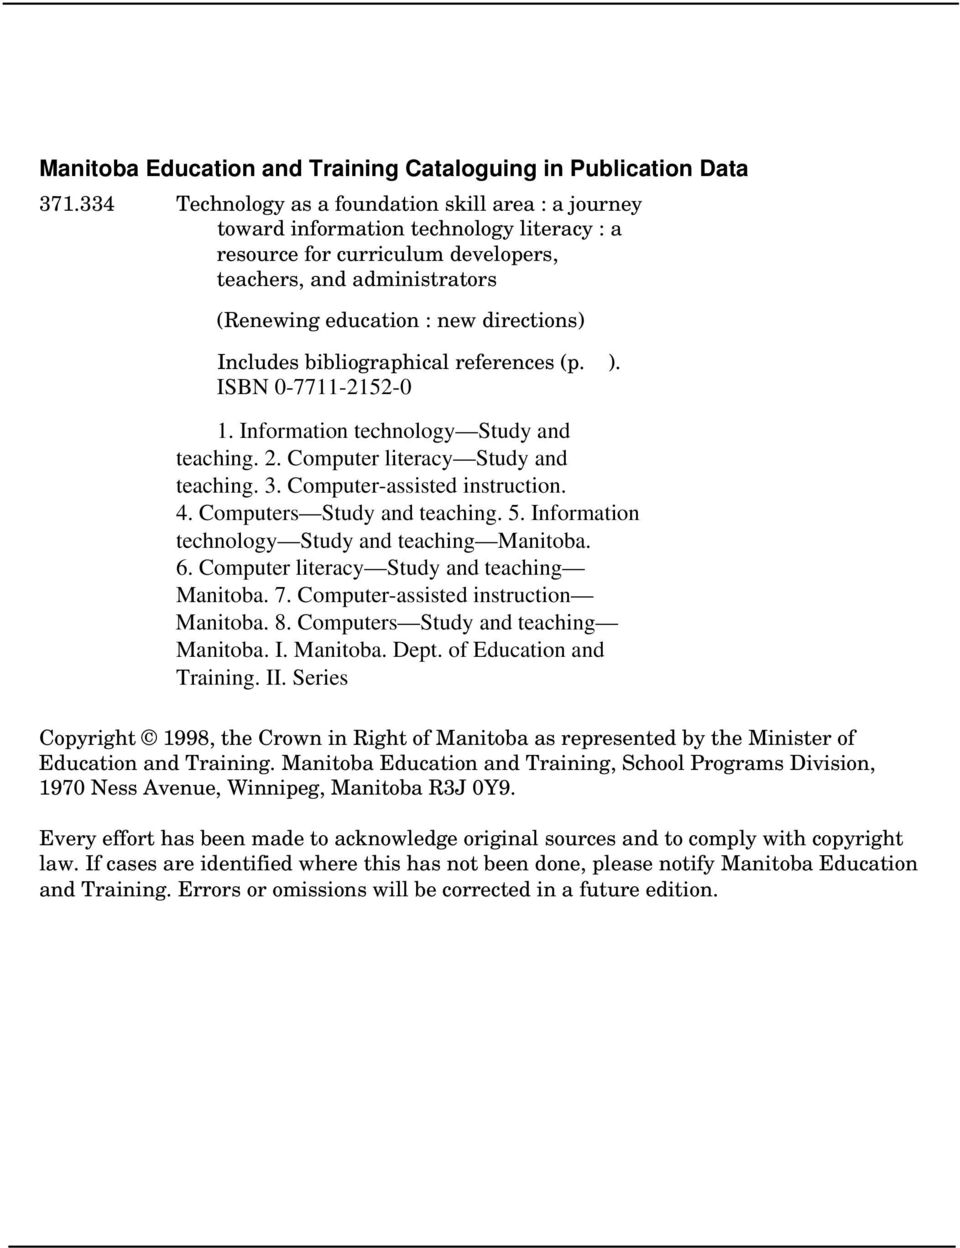 Includes bibliographical references (p. ). ISBN 0-7711-2152-0 1. Information technology Study and teaching. 2. Computer literacy Study and teaching. 3. Computer-assisted instruction. 4.